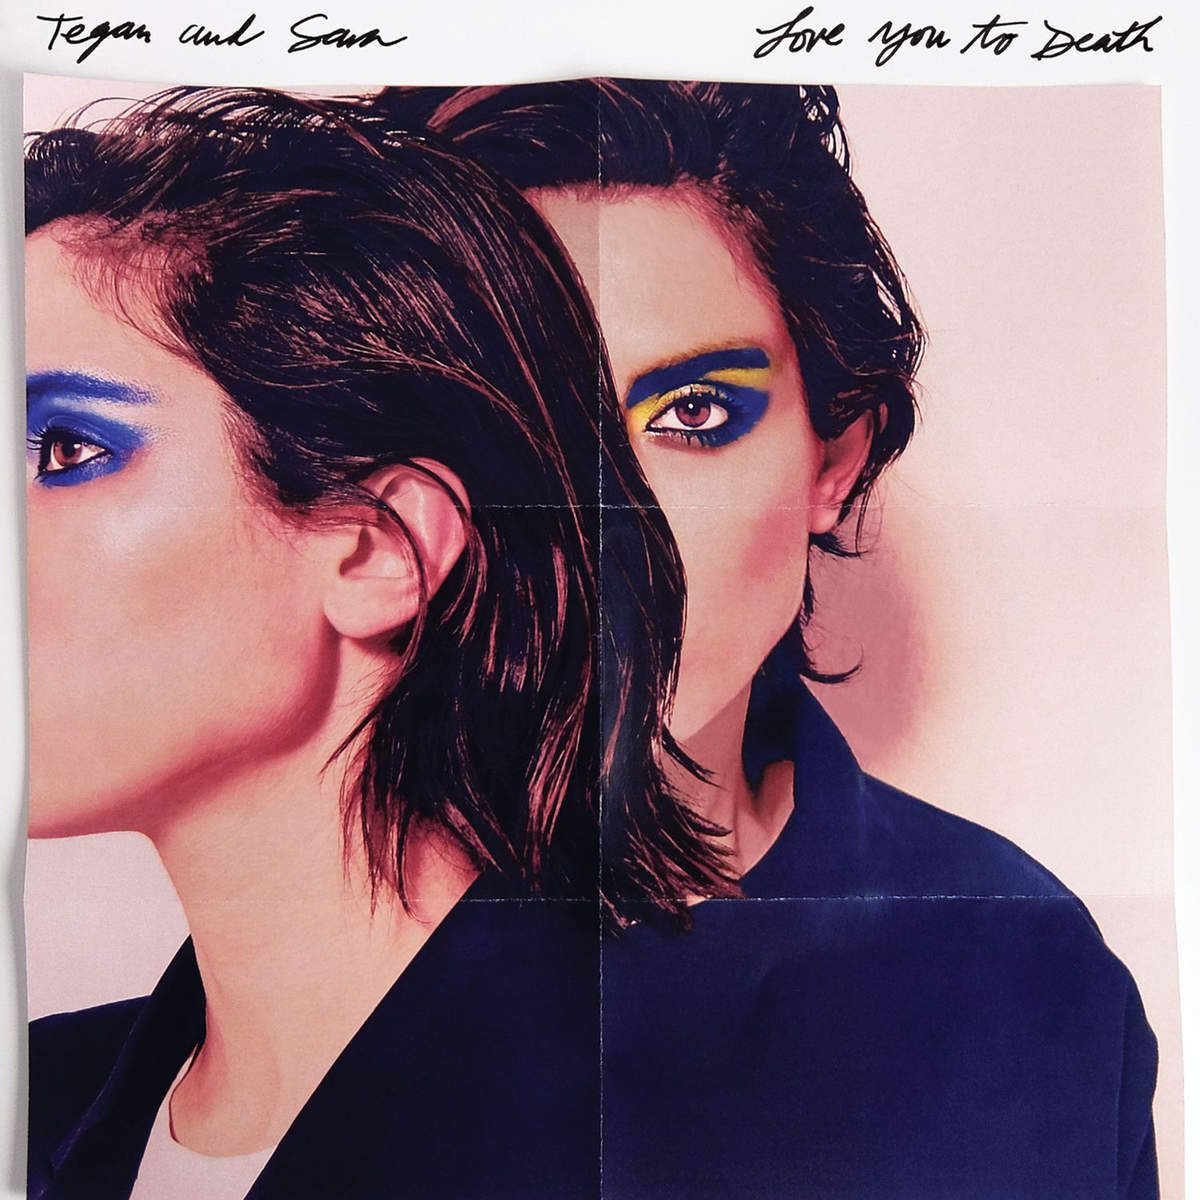 Tegan and Sara - Love You To Death album cover